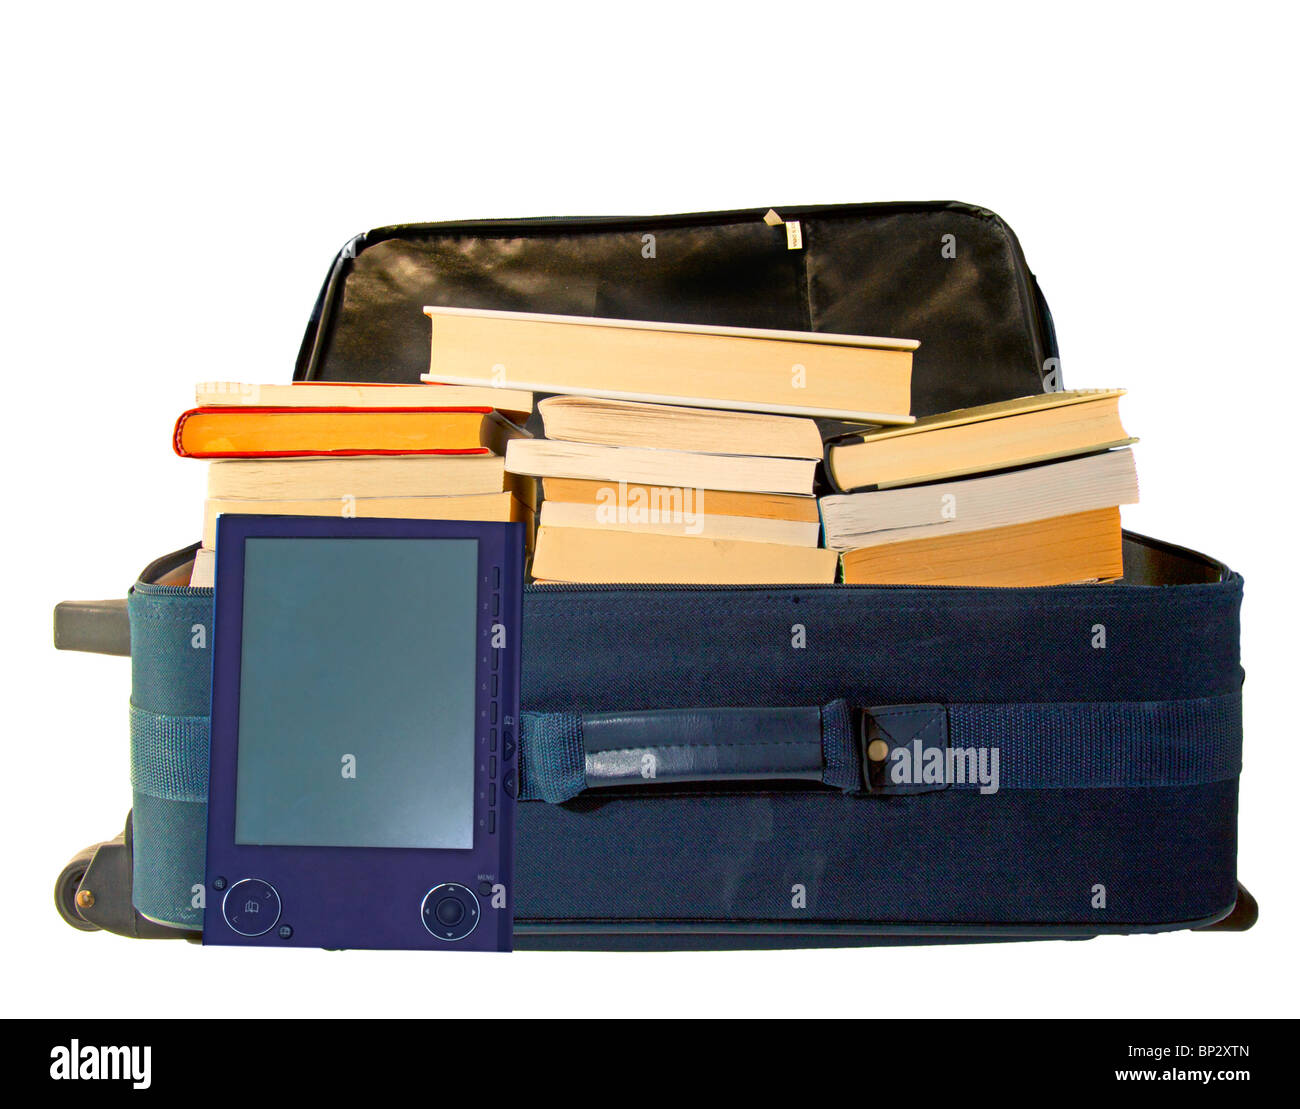 A blue suitcase for travel completely full of books next to an ebook reader (Sony prs505) - Stock Image